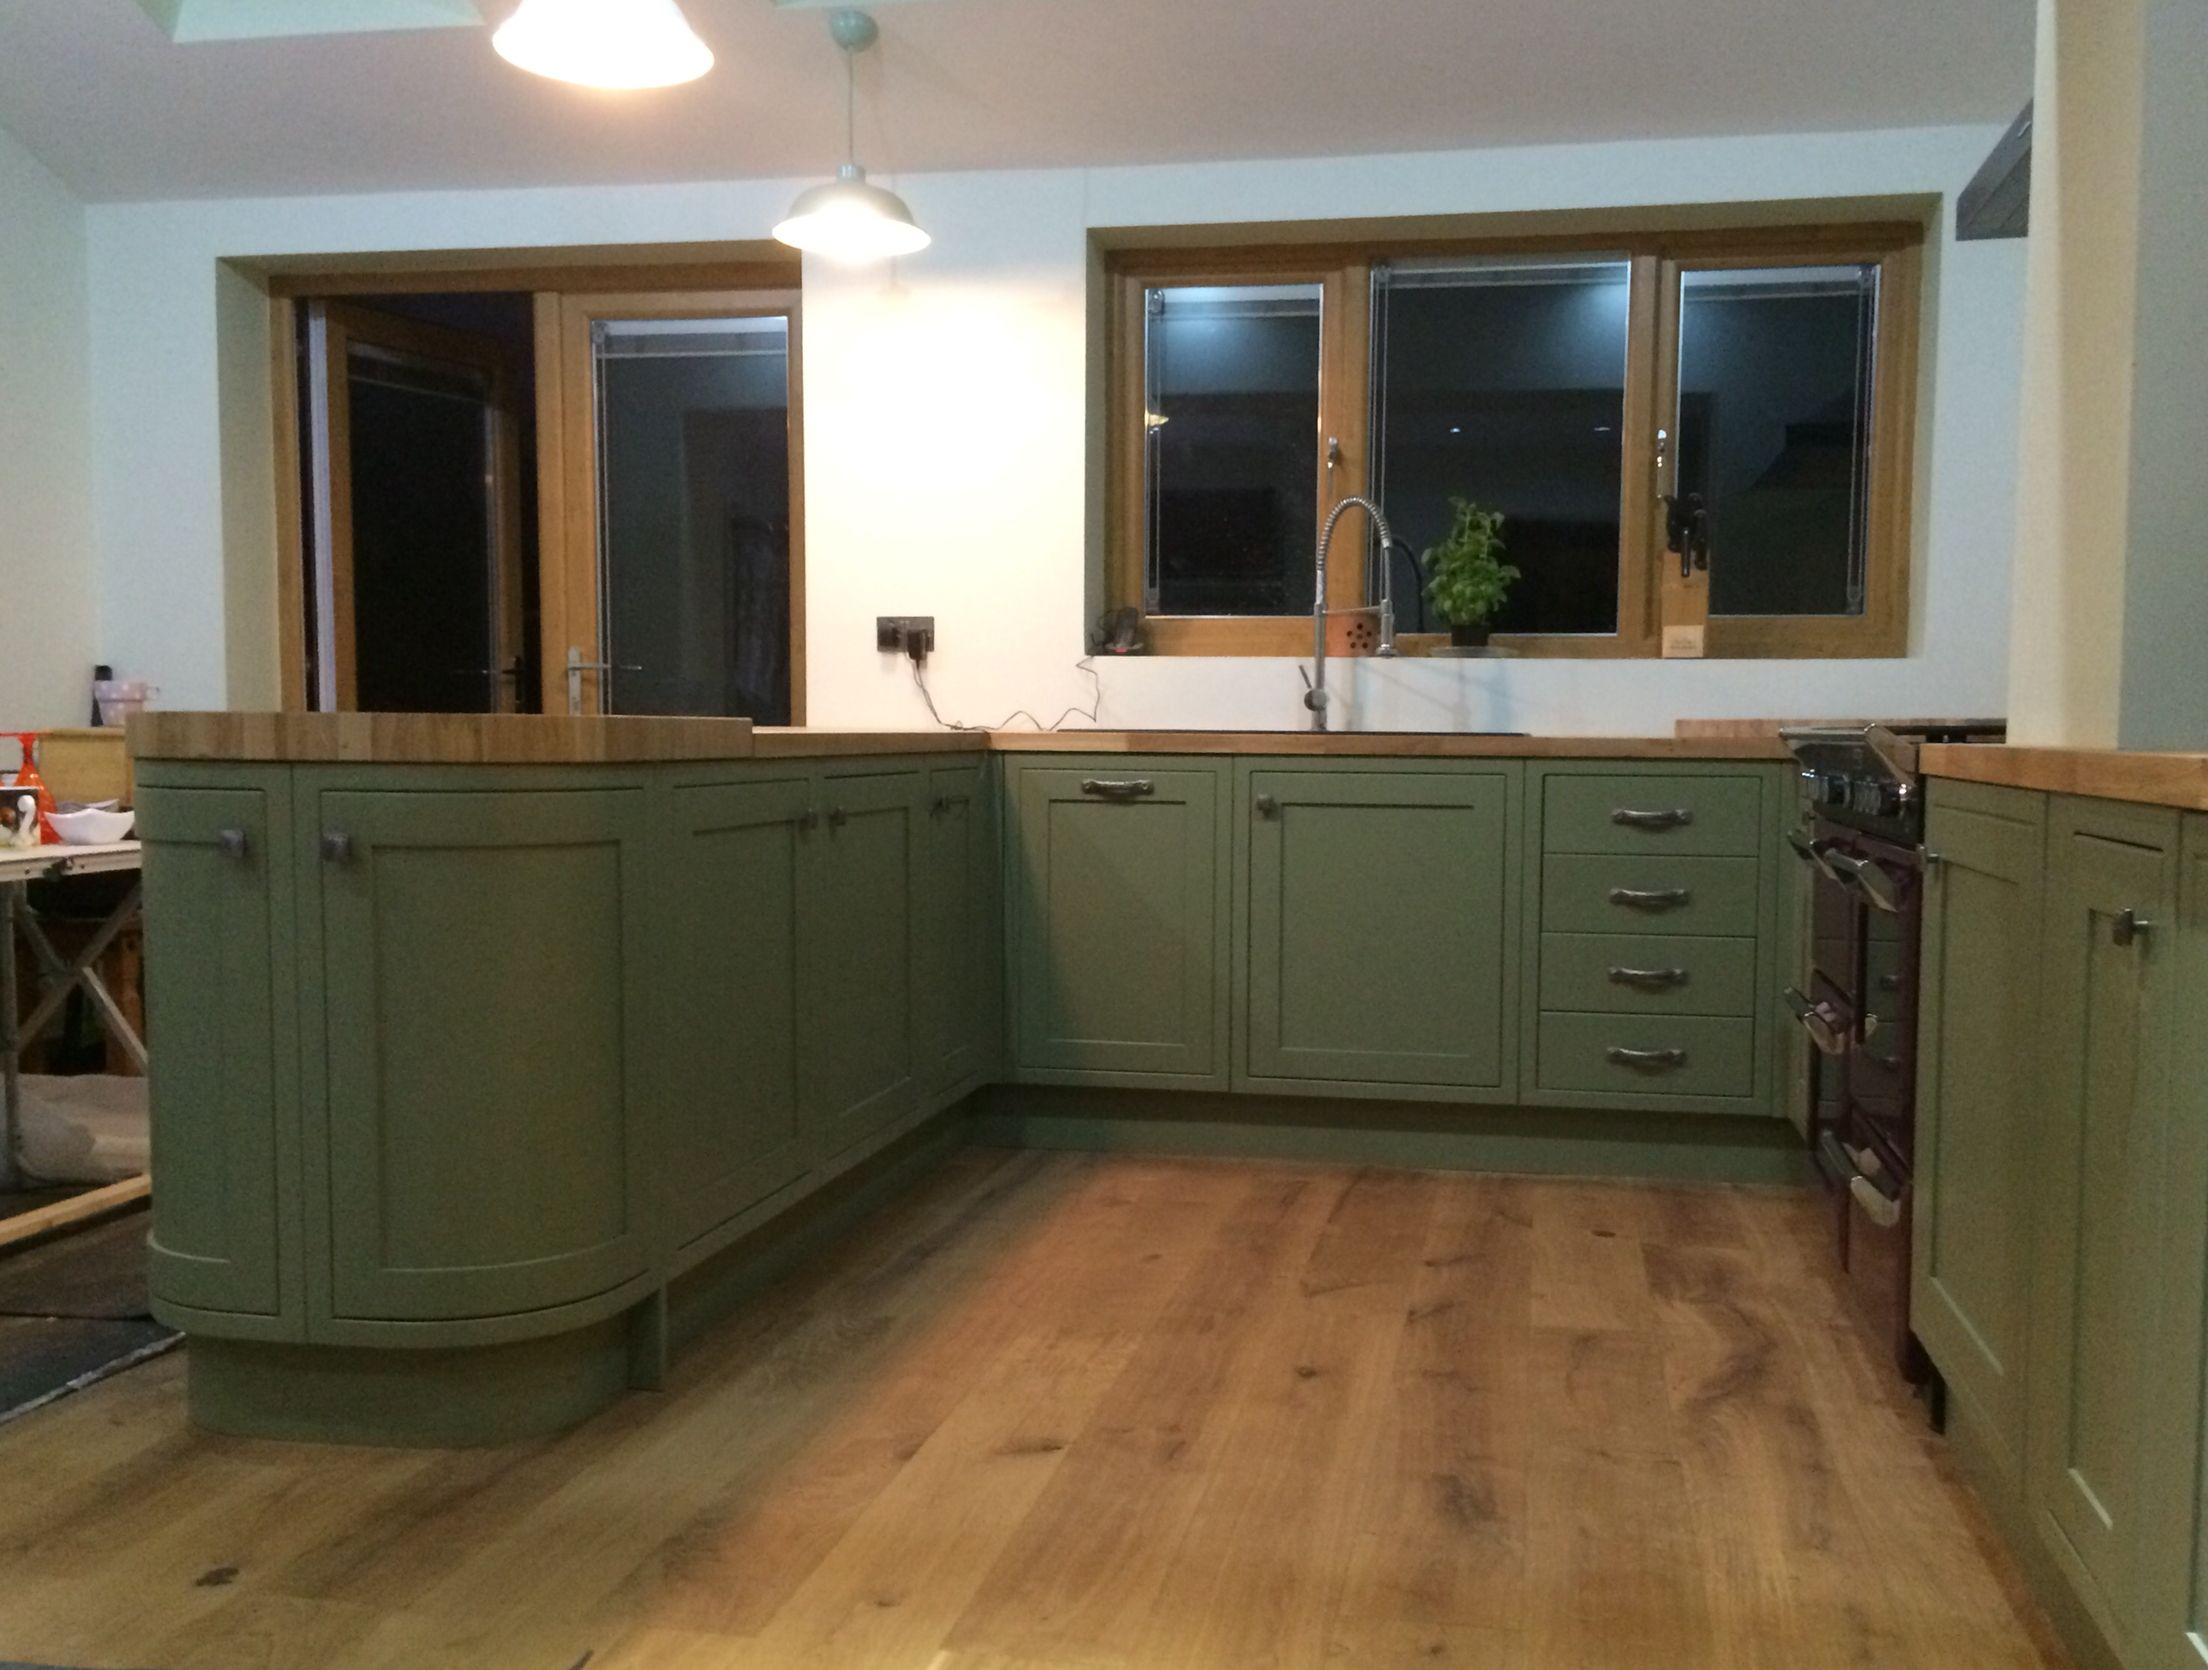 Best Bespoke Painted Kitchen In Olive Farrow Ball House 400 x 300